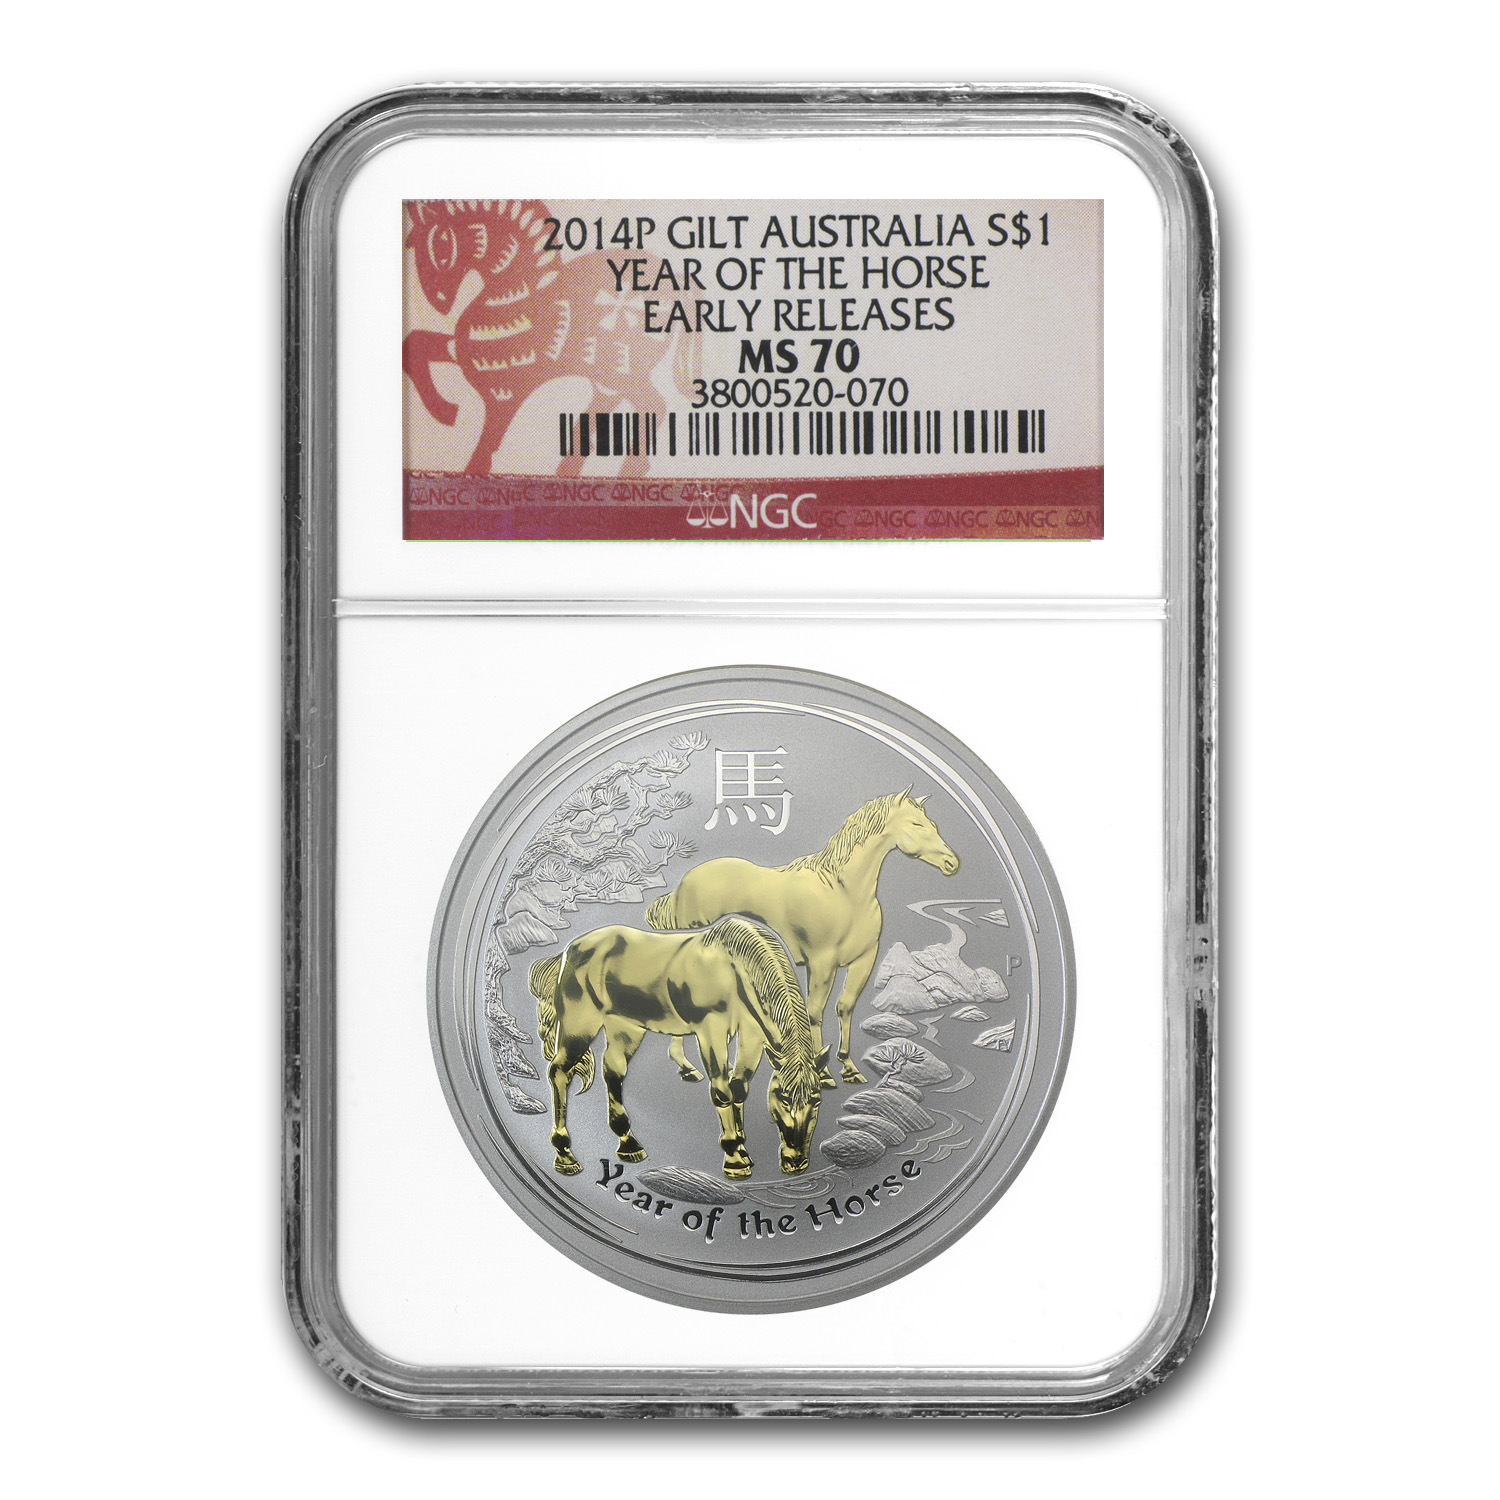 2014 Australia 1 oz Silver Year of the Horse MS-70 NGC (Gilded)